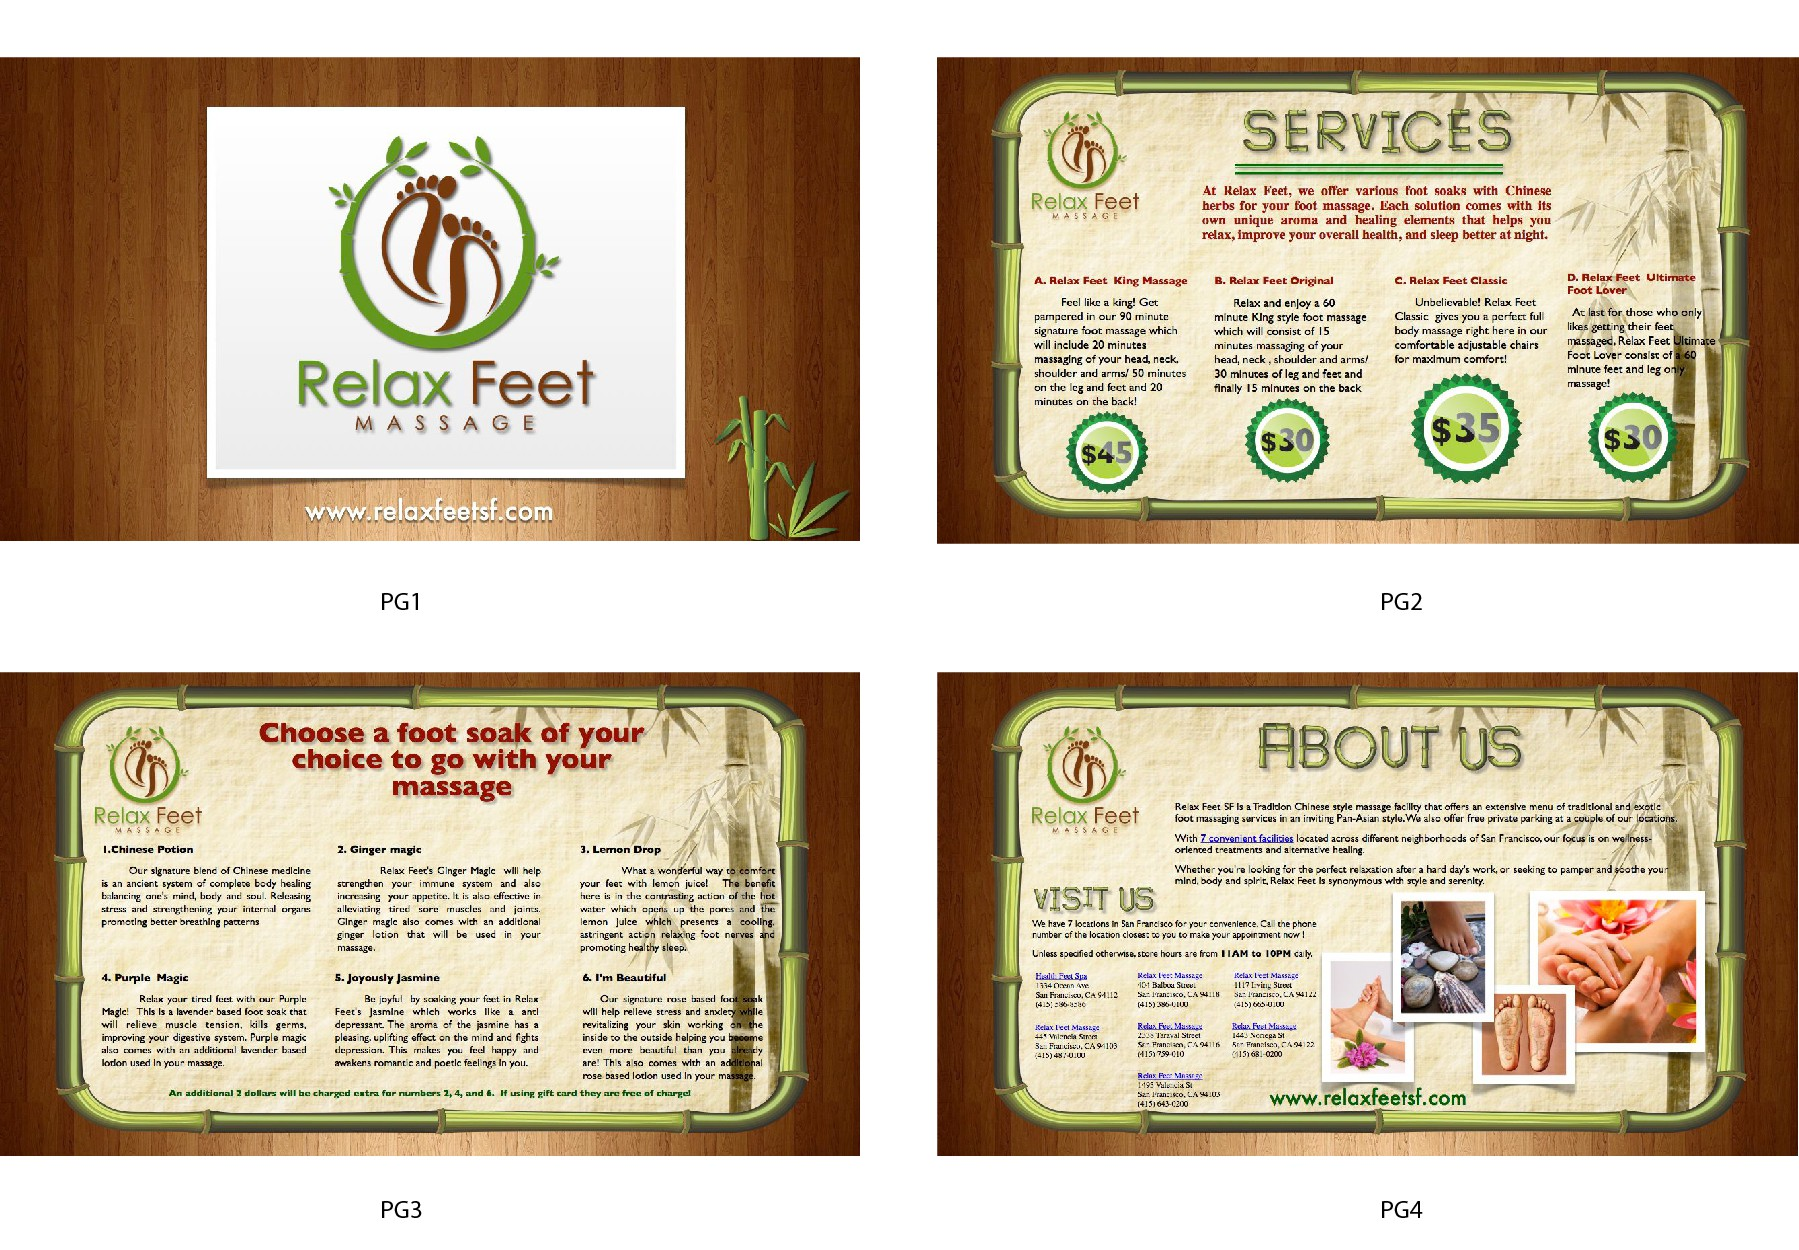 design for Relax Feet Massage menu